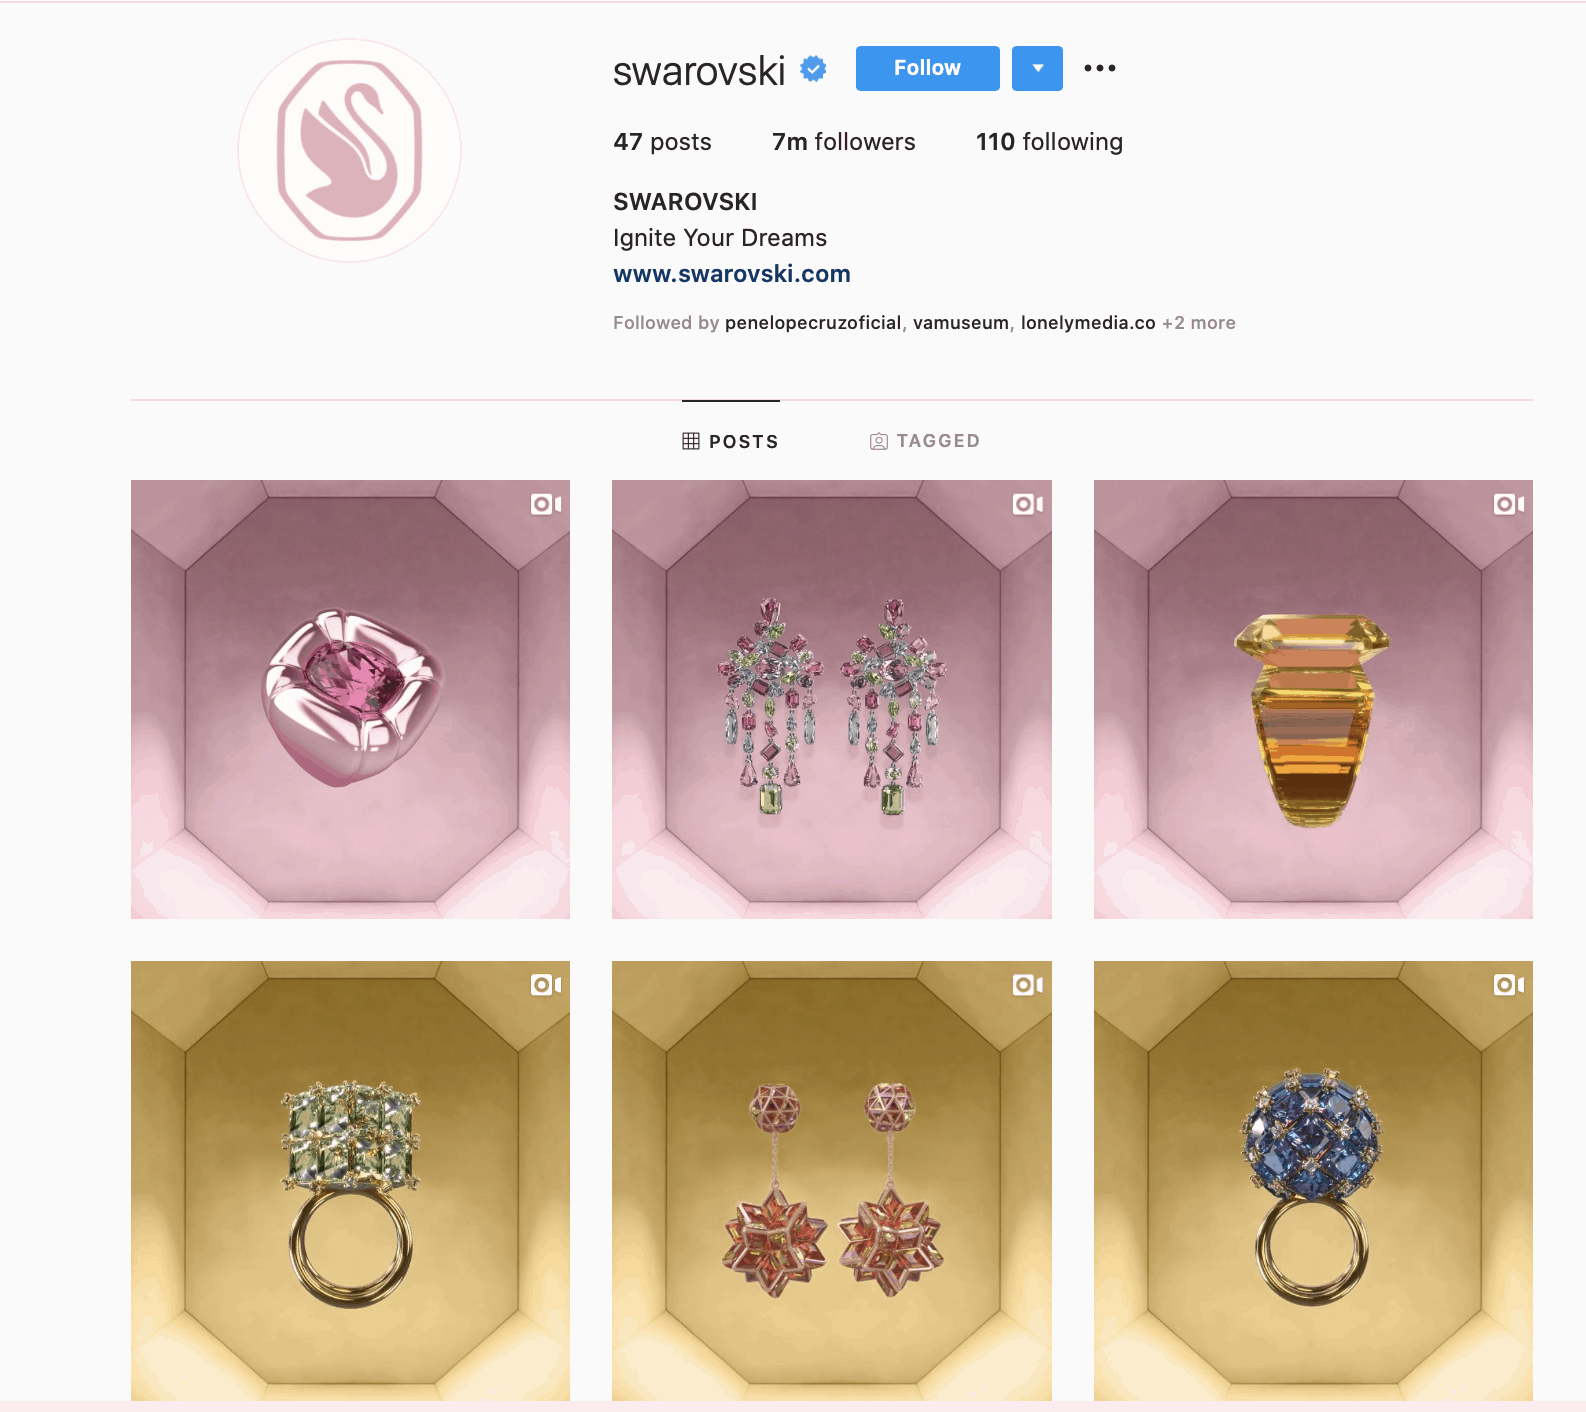 How to Reach 1000 Followers on Instagram (A Guide for Brands)